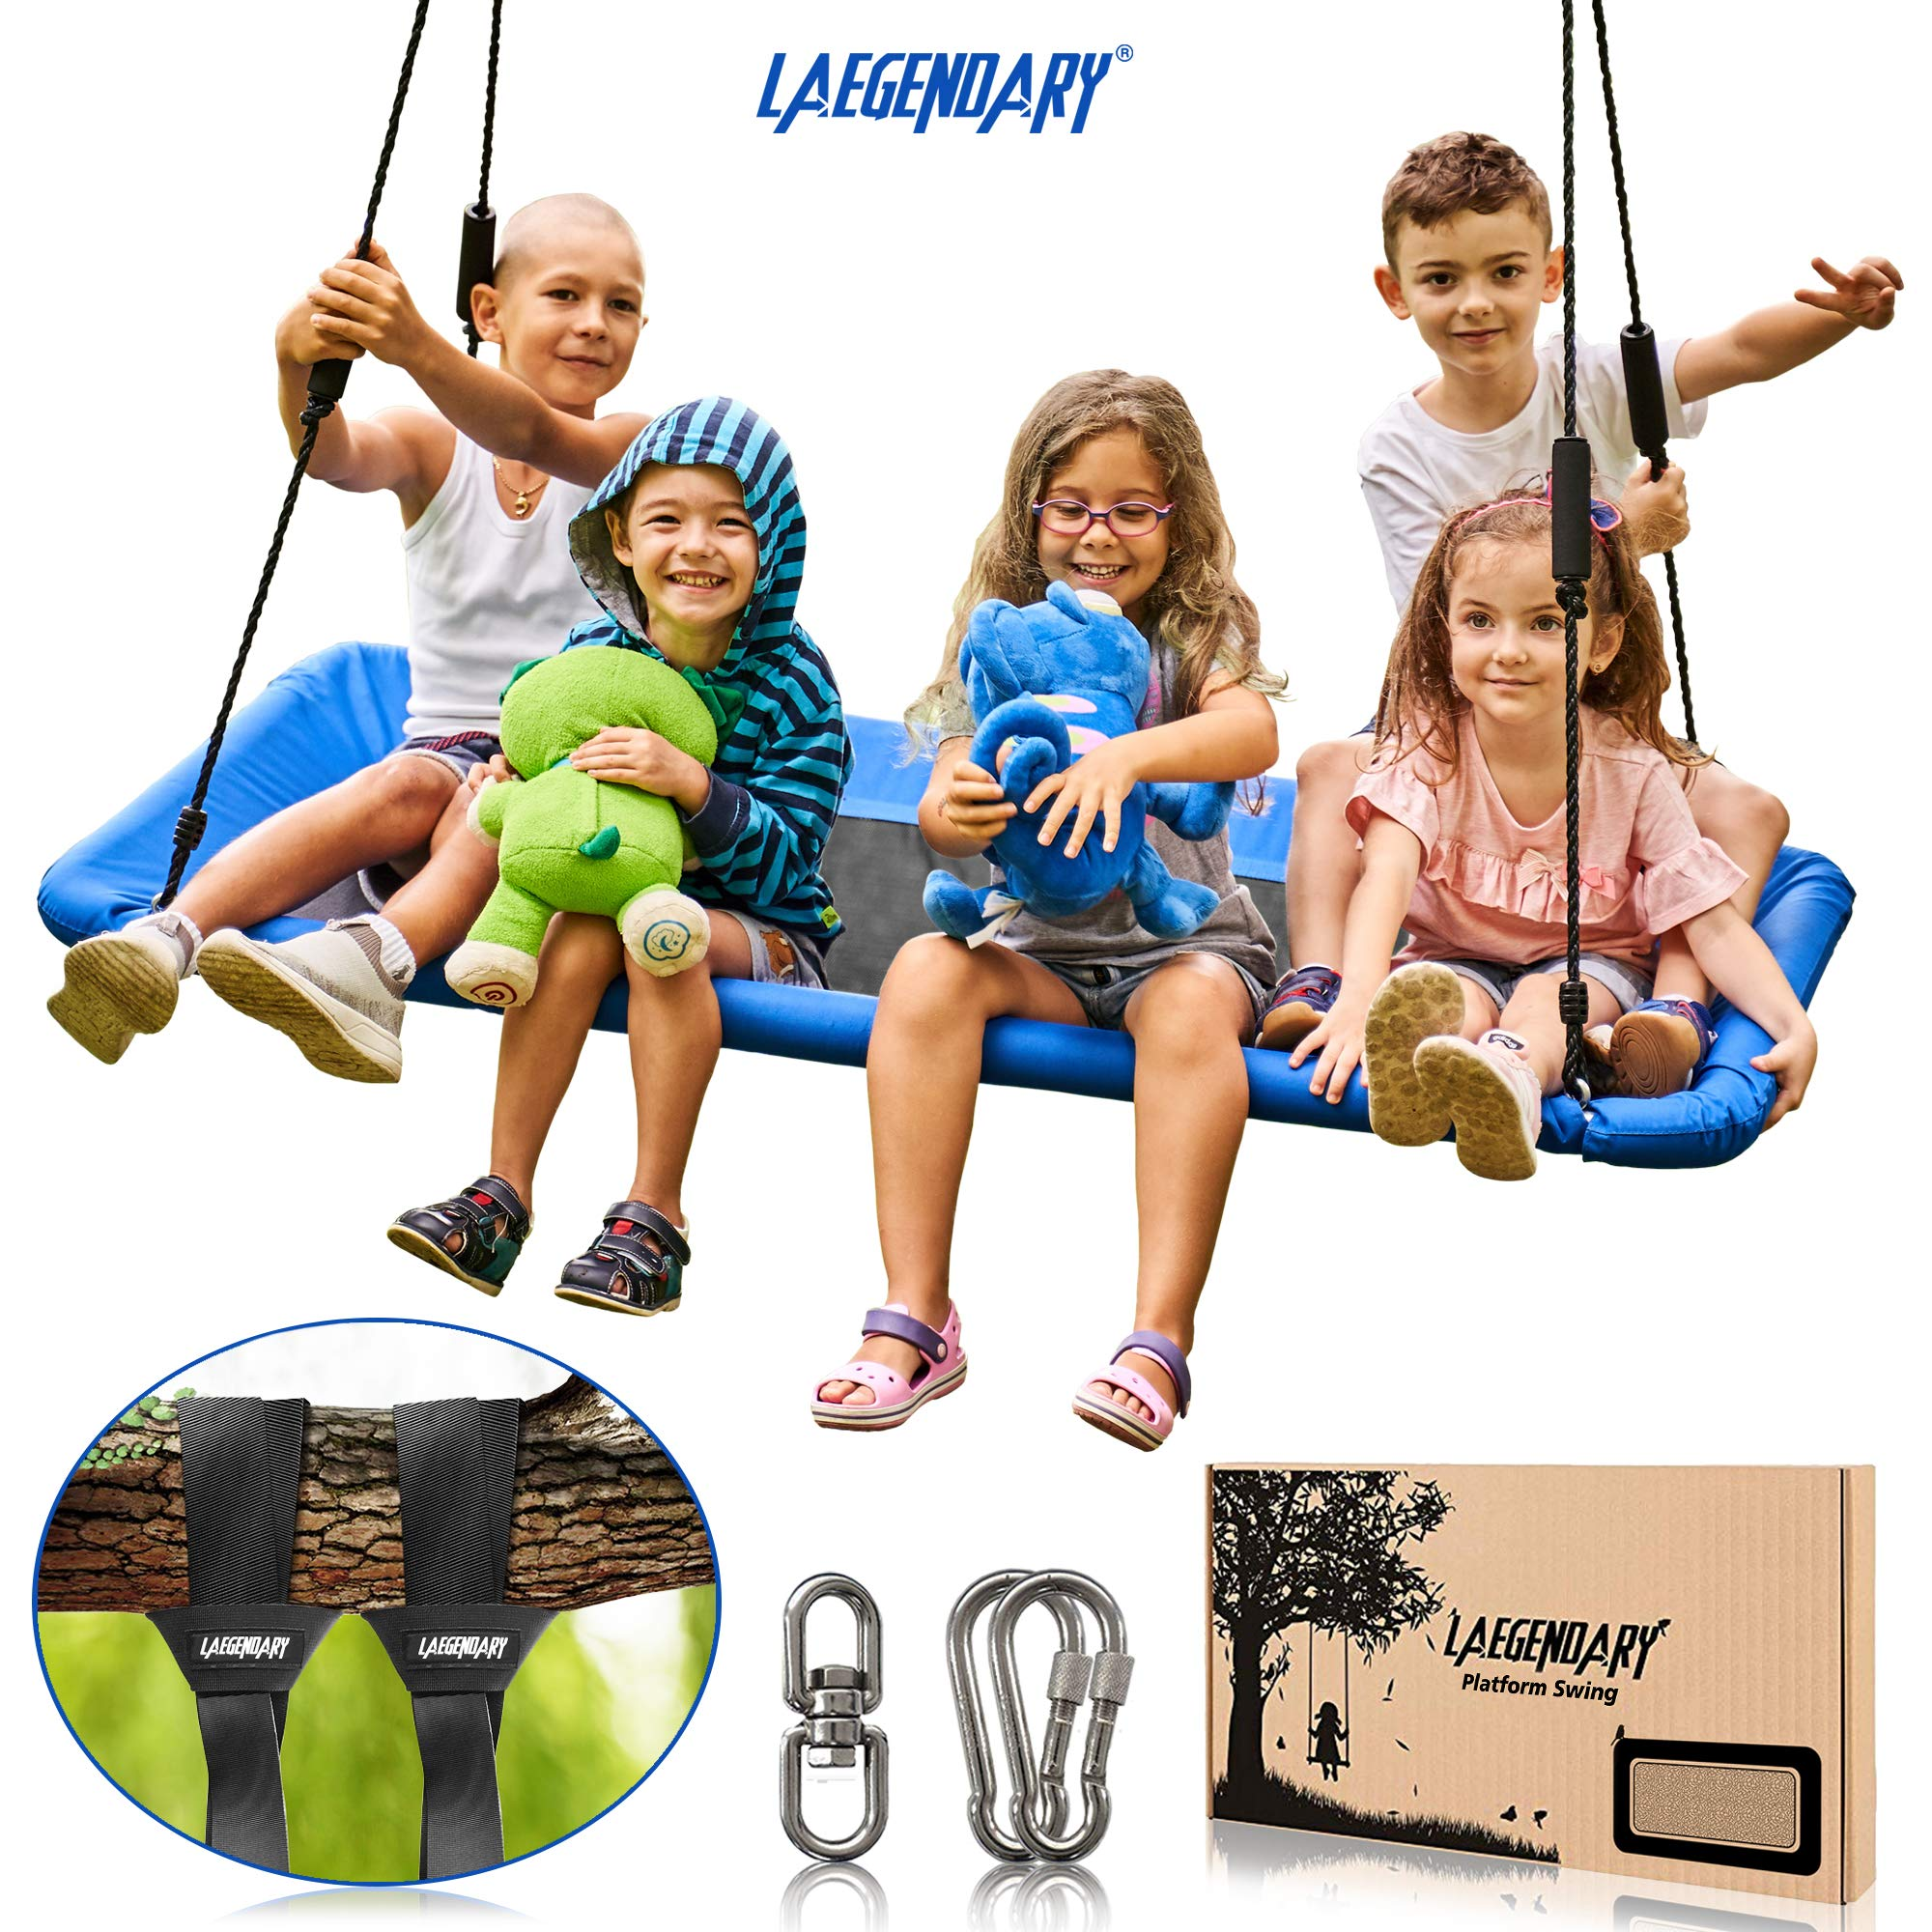 60'' Giant Platform Tree Swing for Kids and Adults | Flying Outdoor Indoor Saucer Hammock | Surf Tire Swingset Accessories Toys | 2 Tree Straps, 2 Carabiners, 1 Swivel | 600 Lb Capacity Yard Swings Set by LÆGENDARY (Image #1)